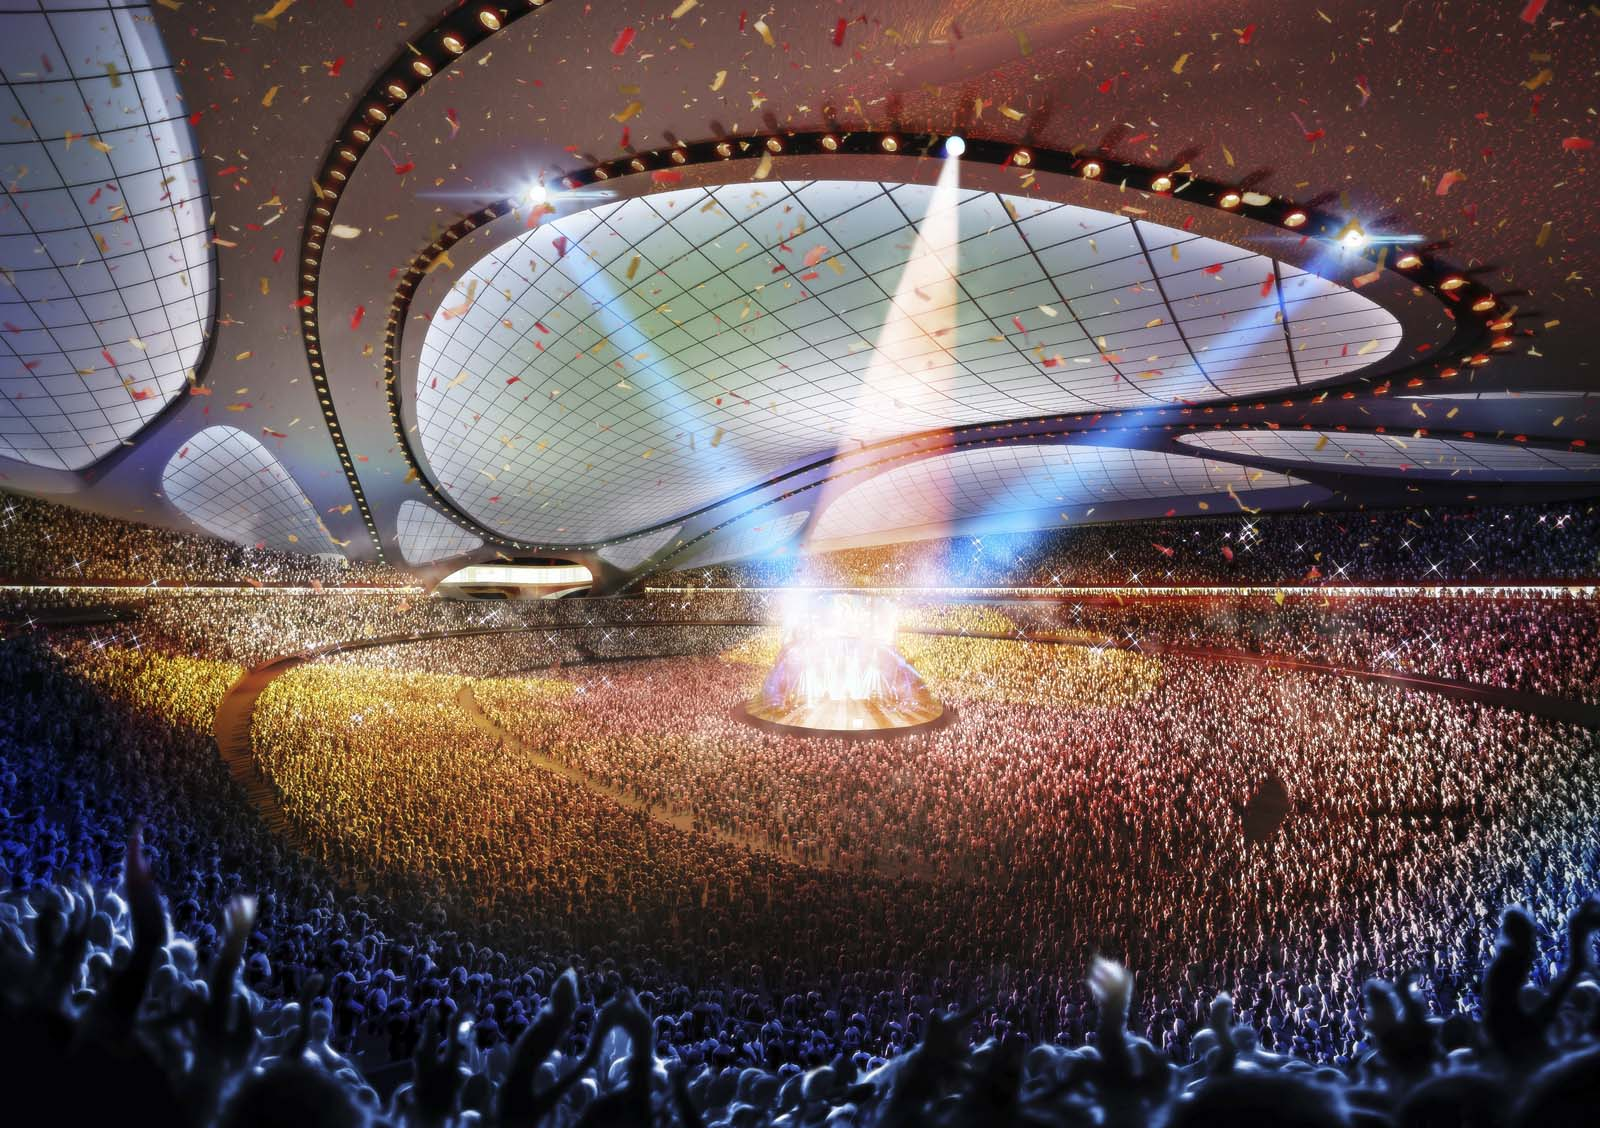 http://www.architecturelist.com/wp-content/uploads/2012/11/ZHA_New-National-Stadium-4.jpg